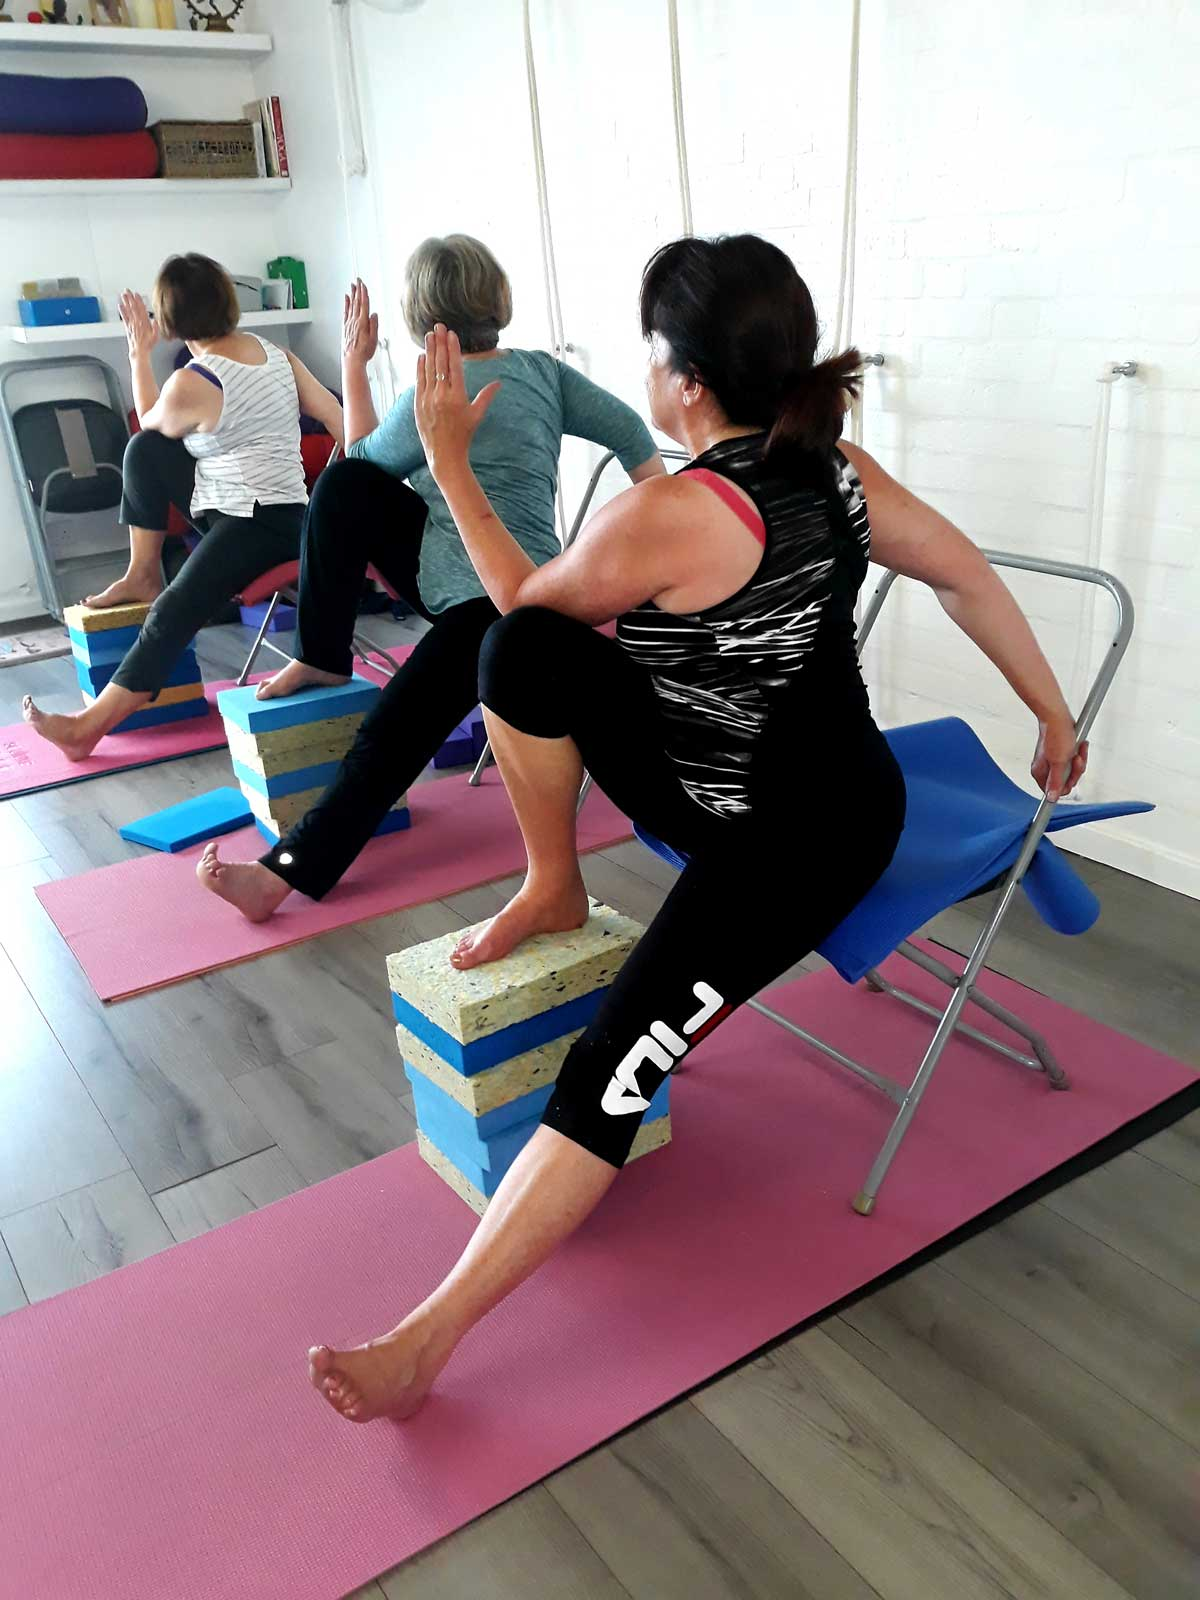 Working with chairs at Crescent Yoga Studio Lytham St Annes